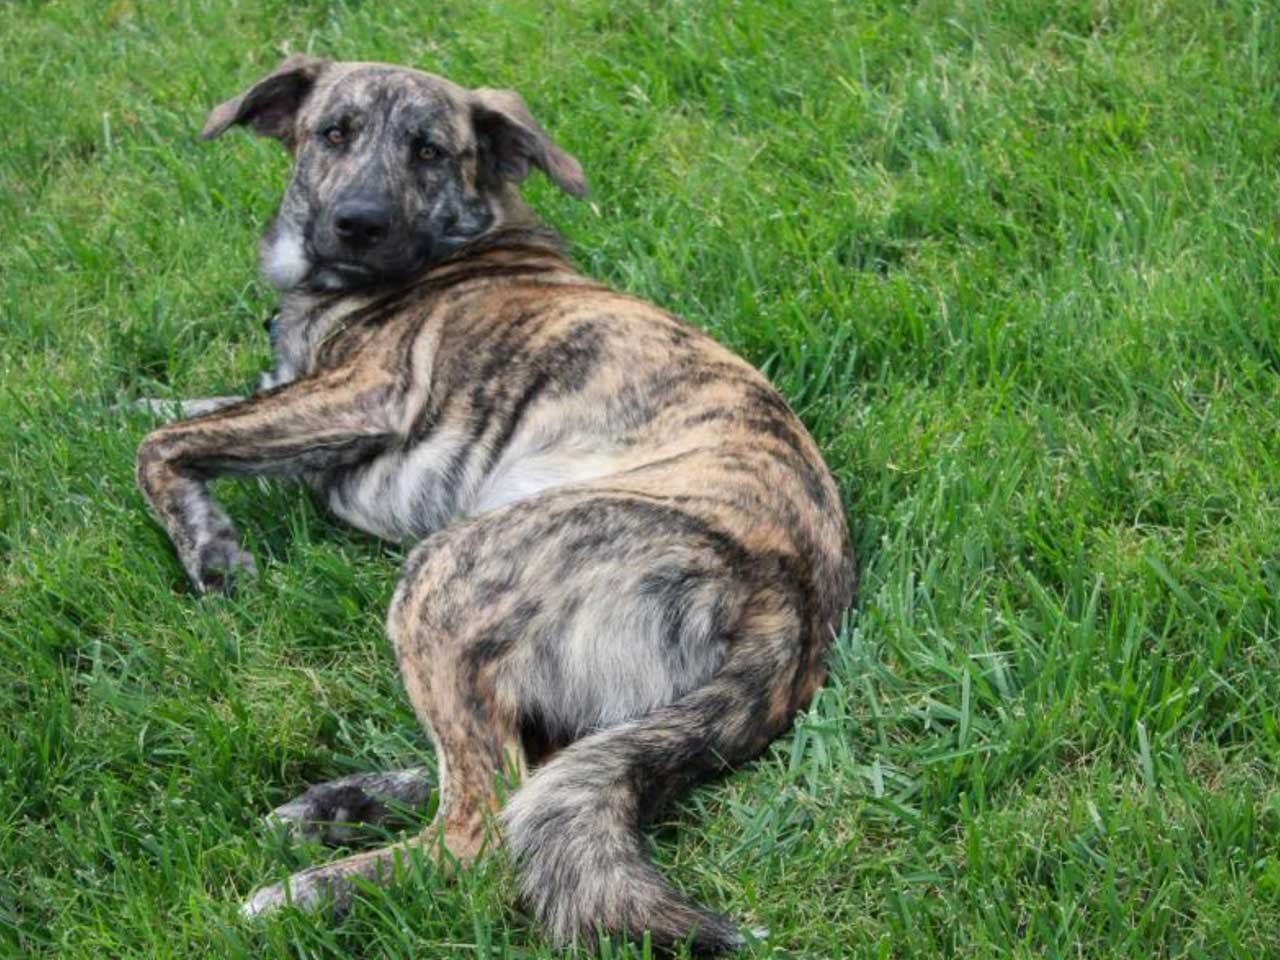 Top 5 Brindle Dog Breeds Preview And Pictures Plott Hound Brindle Dog Breeds Dogs